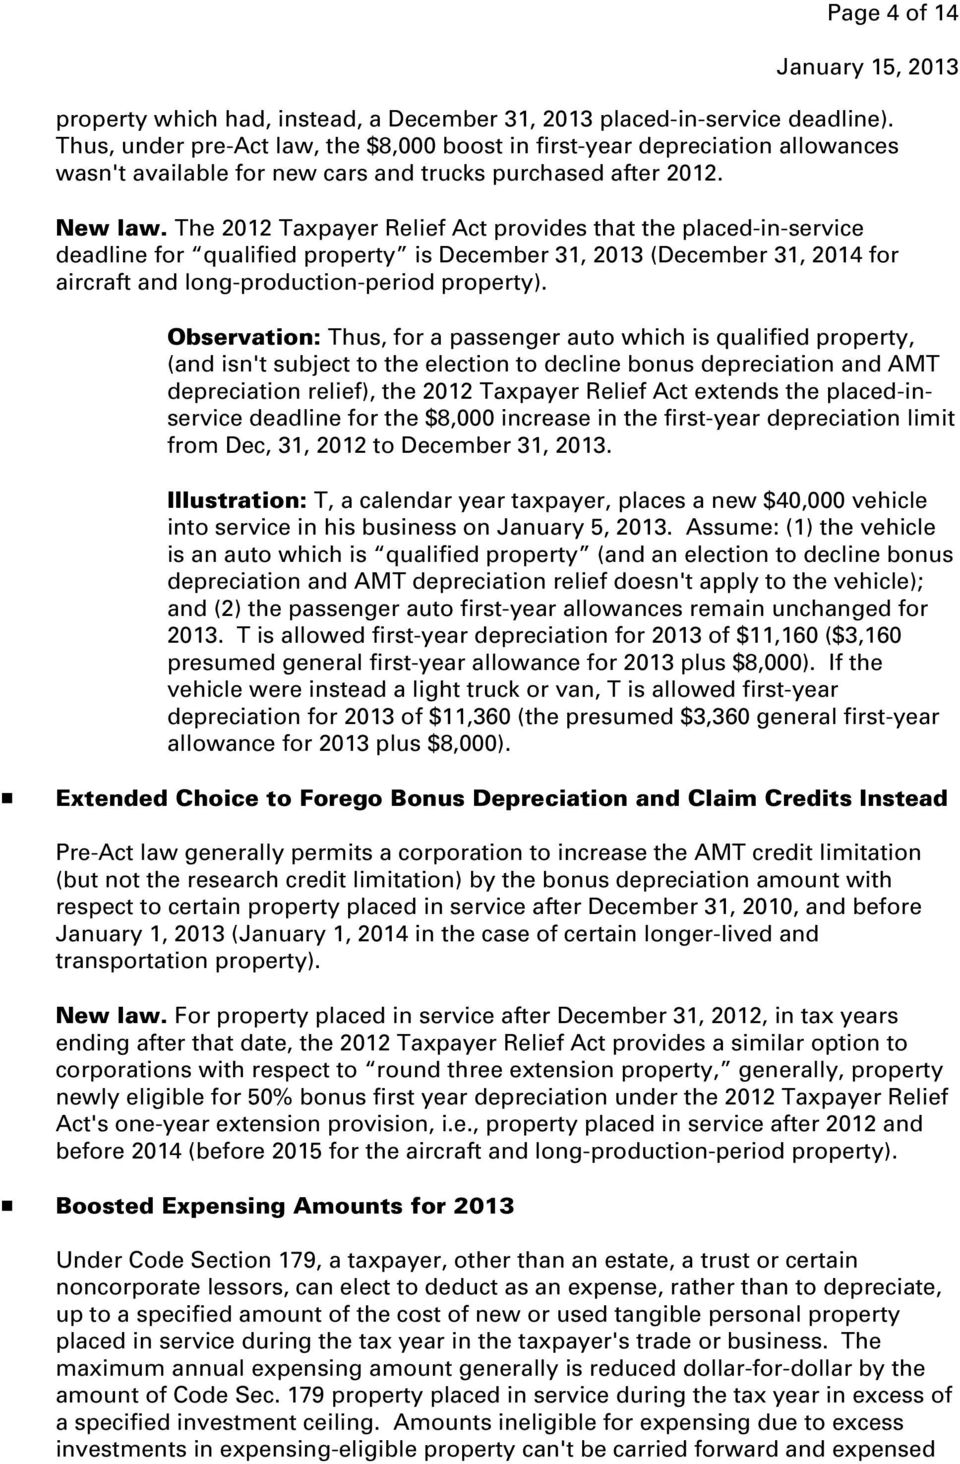 The 2012 Taxpayer Relief Act provides that the placed-in-service deadline for qualified property is December 31, 2013 (December 31, 2014 for aircraft and long-production-period property).